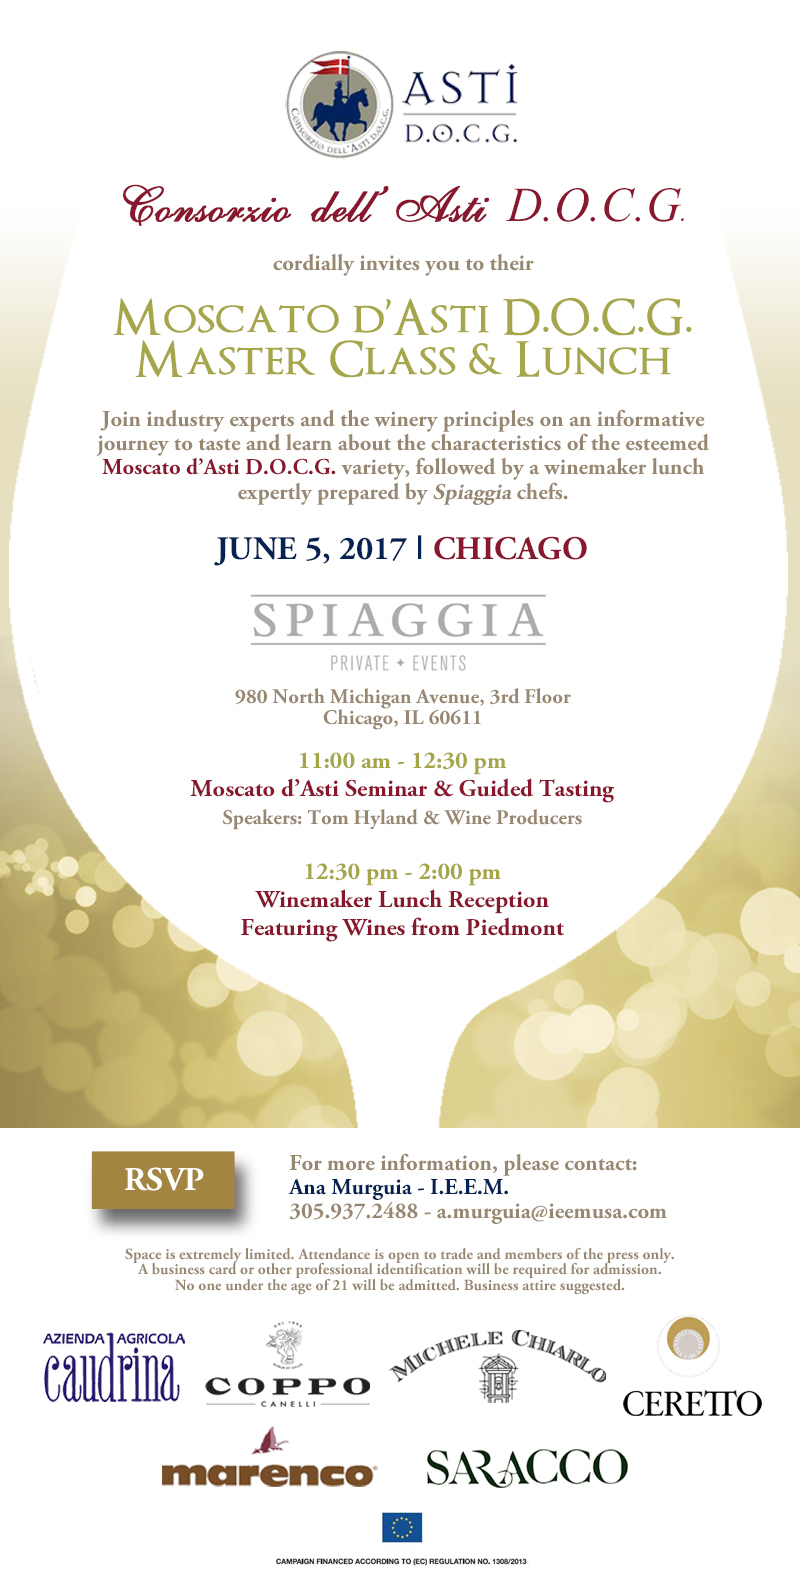 Moscato dAsti Invitation Chicago